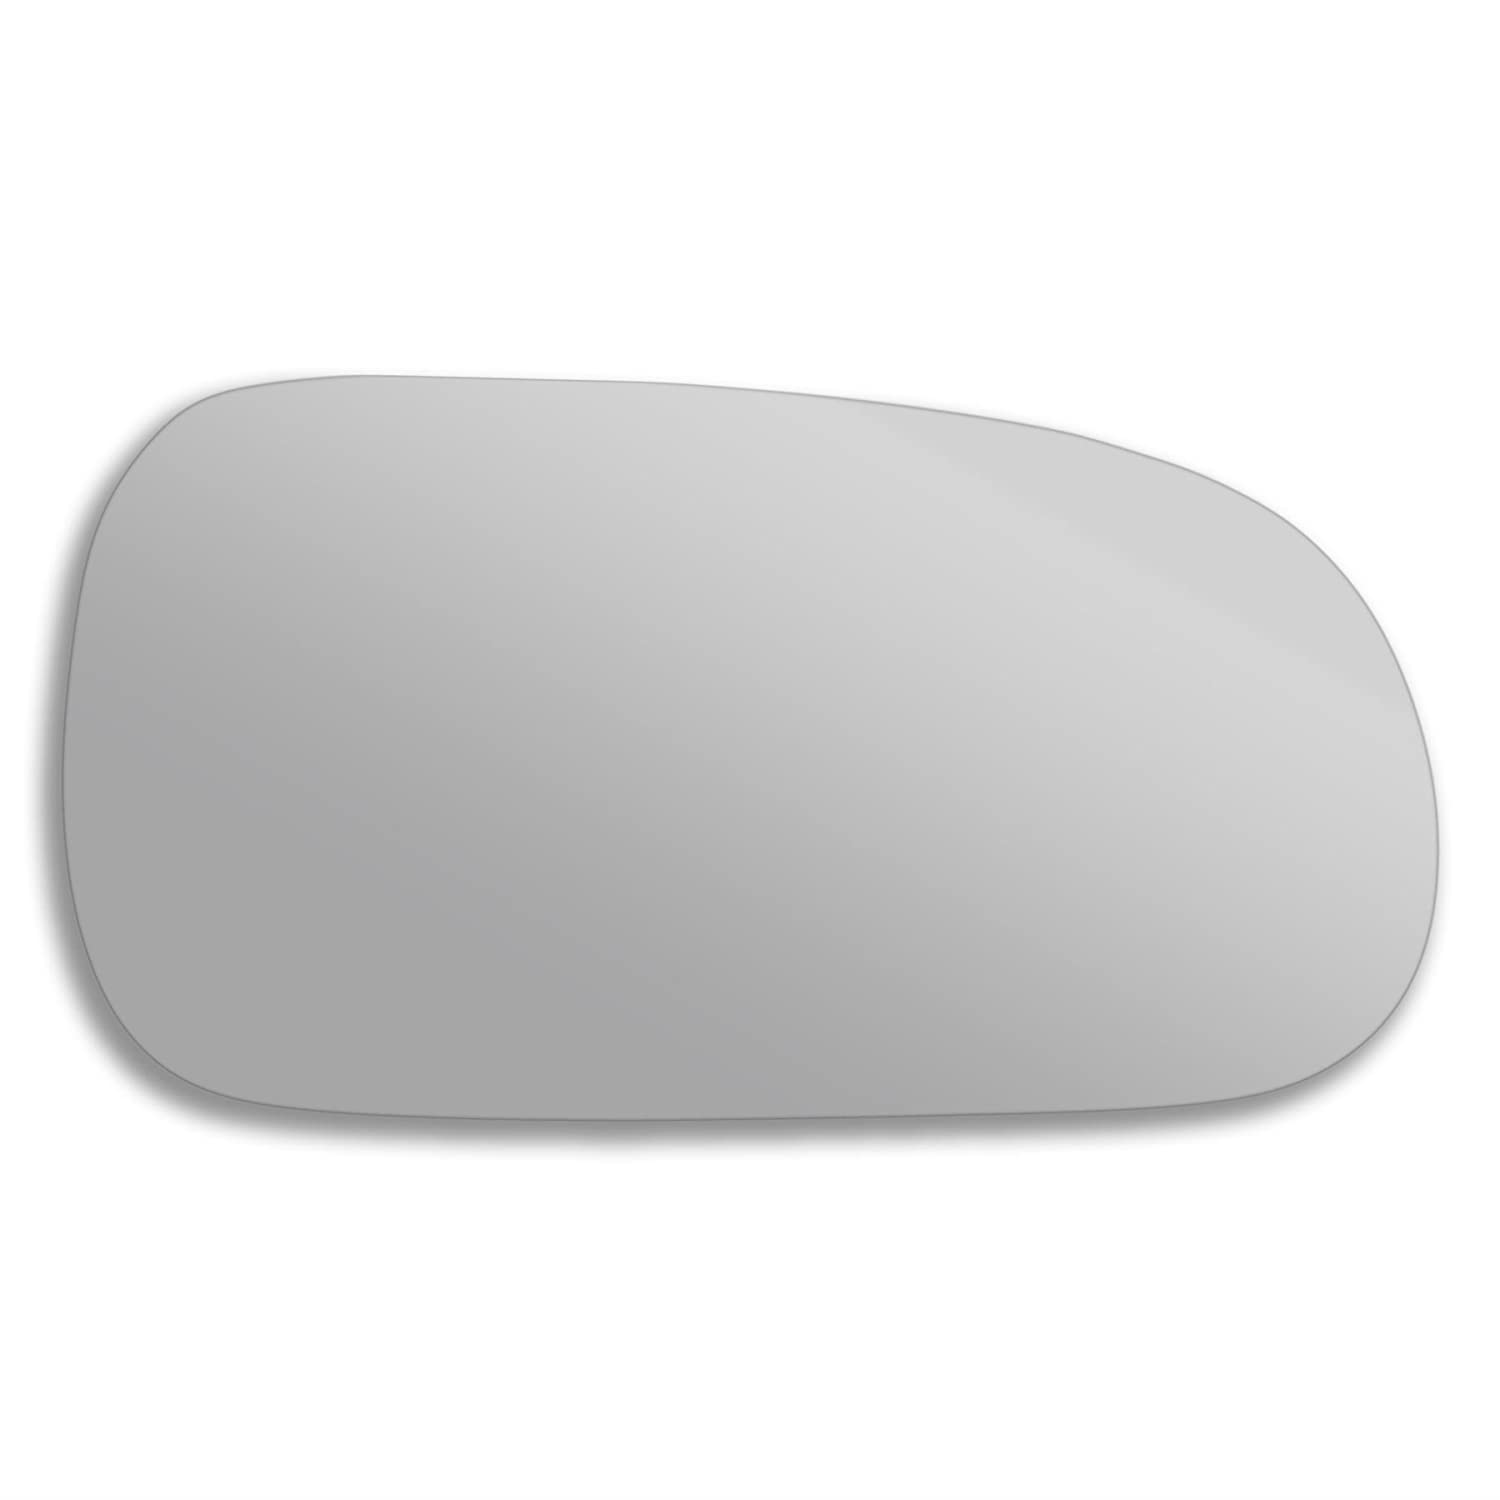 Ro600 Right side wing mirror glass Real glass,door stick on mirror replacement Driver side quick fix silver #Ro60-93//98-R/_c